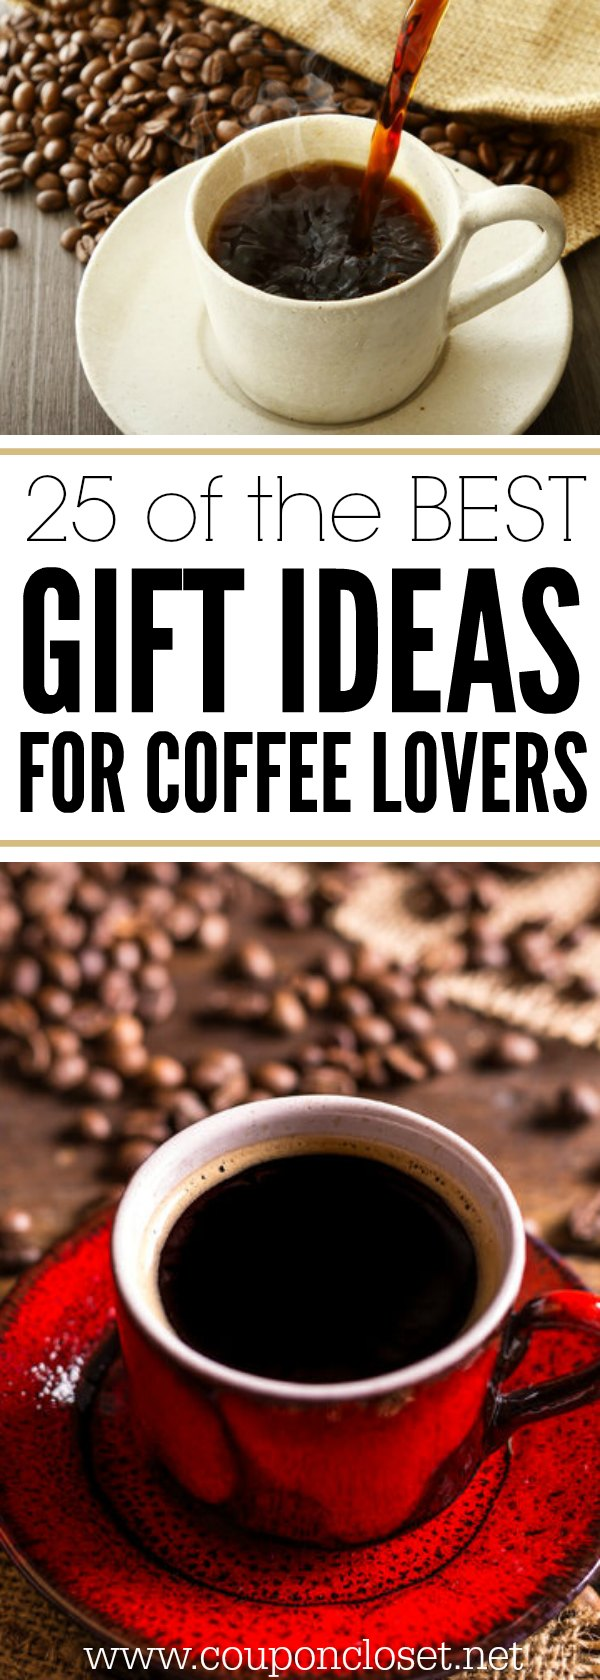 Here are 25 fun and frugal gifts for coffee lovers. These easy gift ideas for coffee lovers are sure to be perfect to make coffee gift baskets.